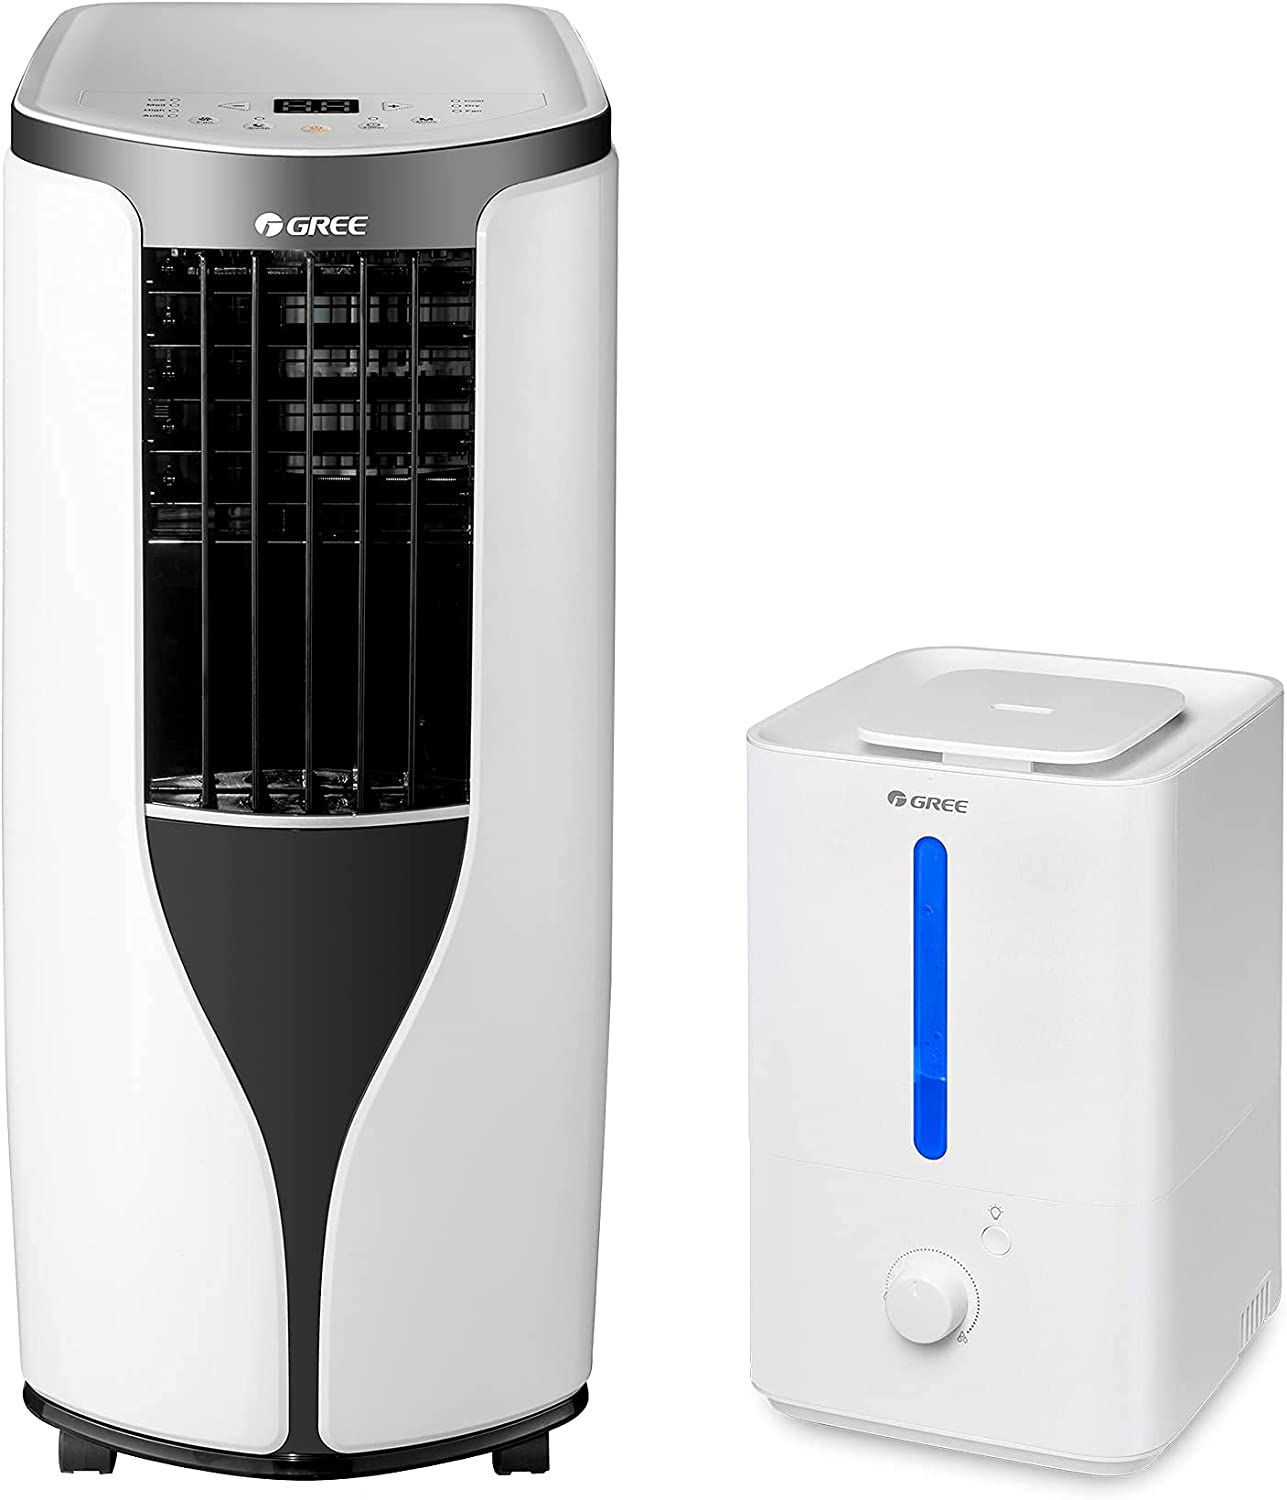 Topics on TV Gree 3 in 1 Portable Air Conditioner Remote Cont 10 BTU with 000 Limited price